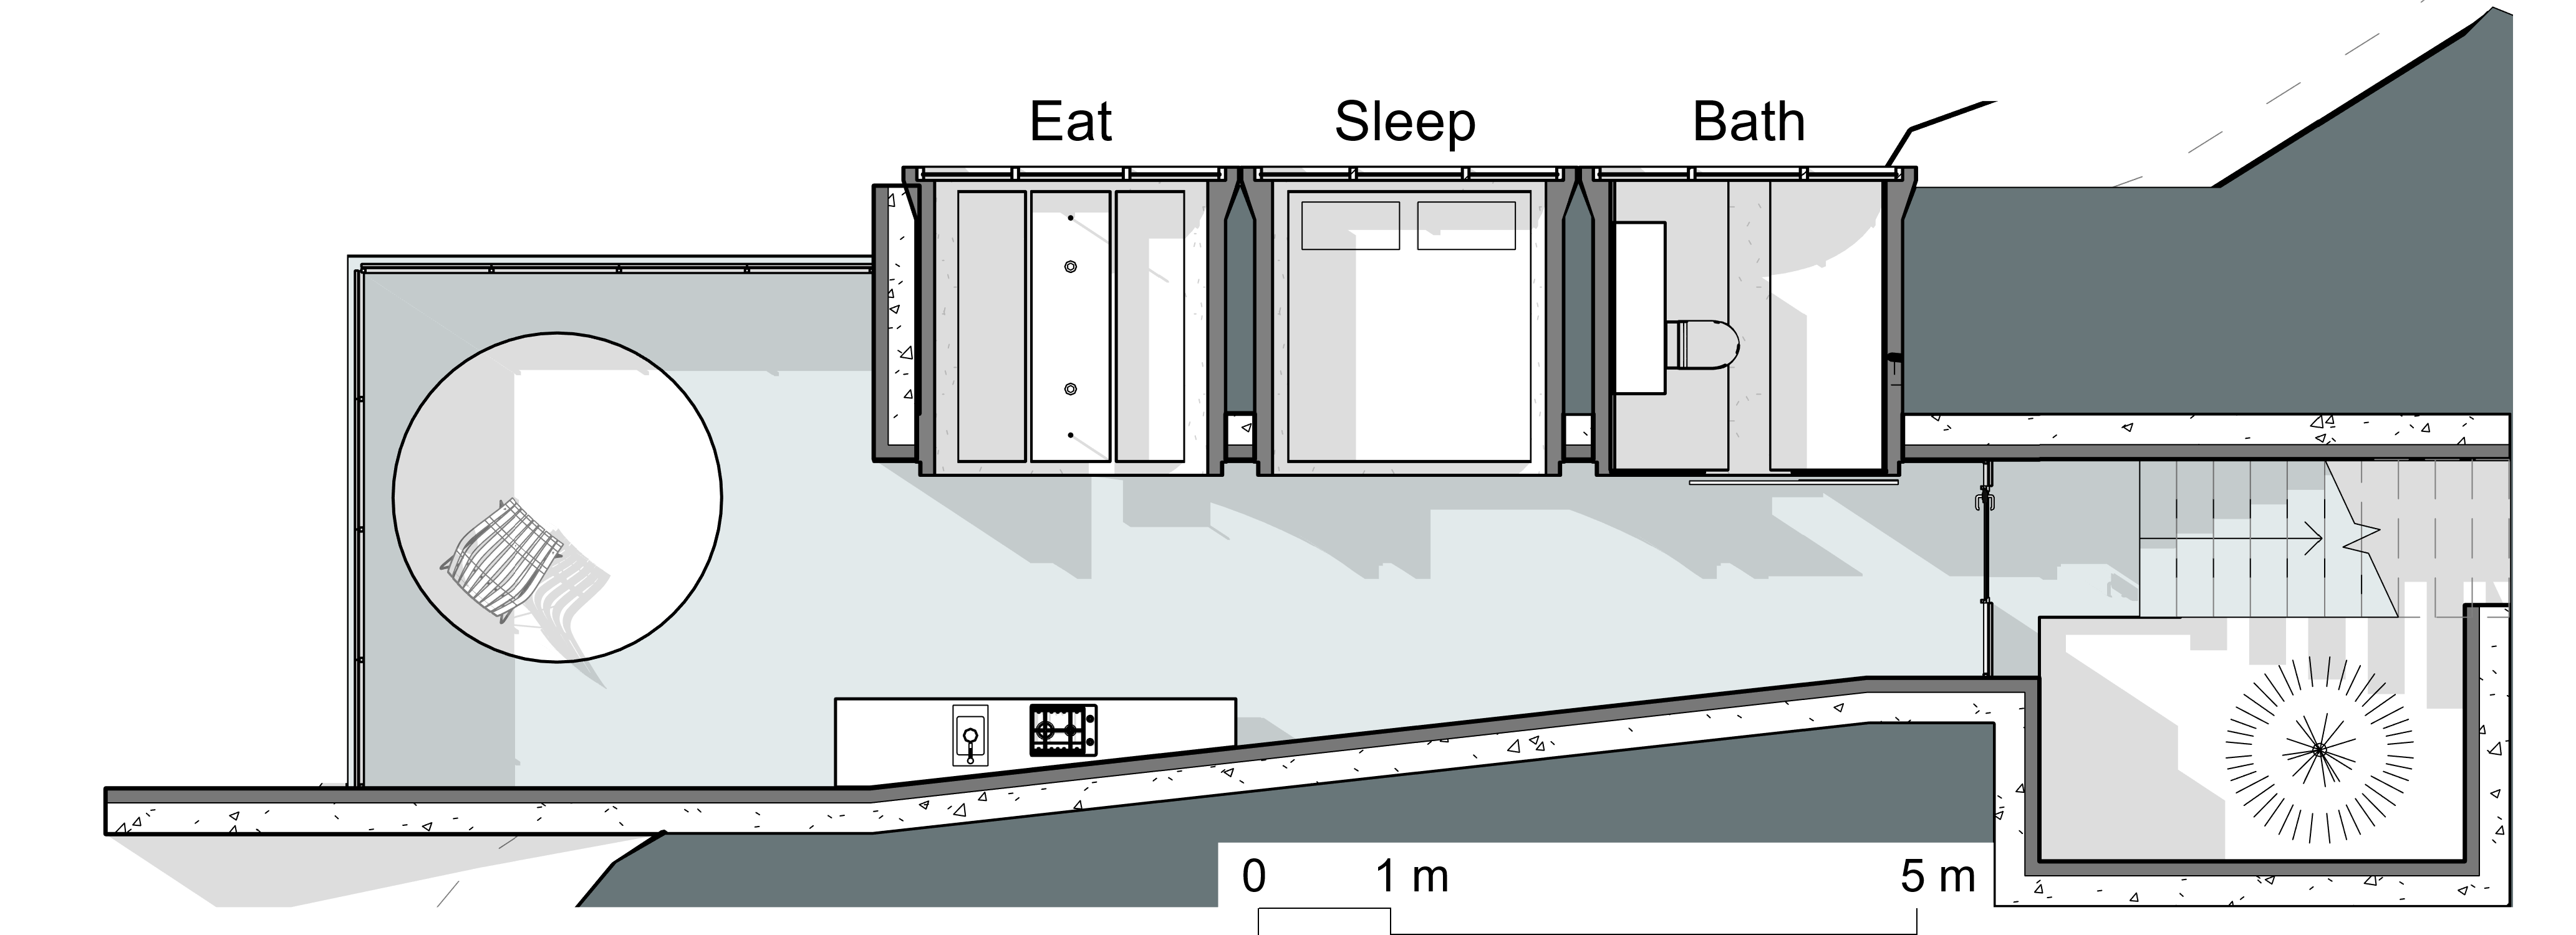 A plan showing the spaces within the shelter